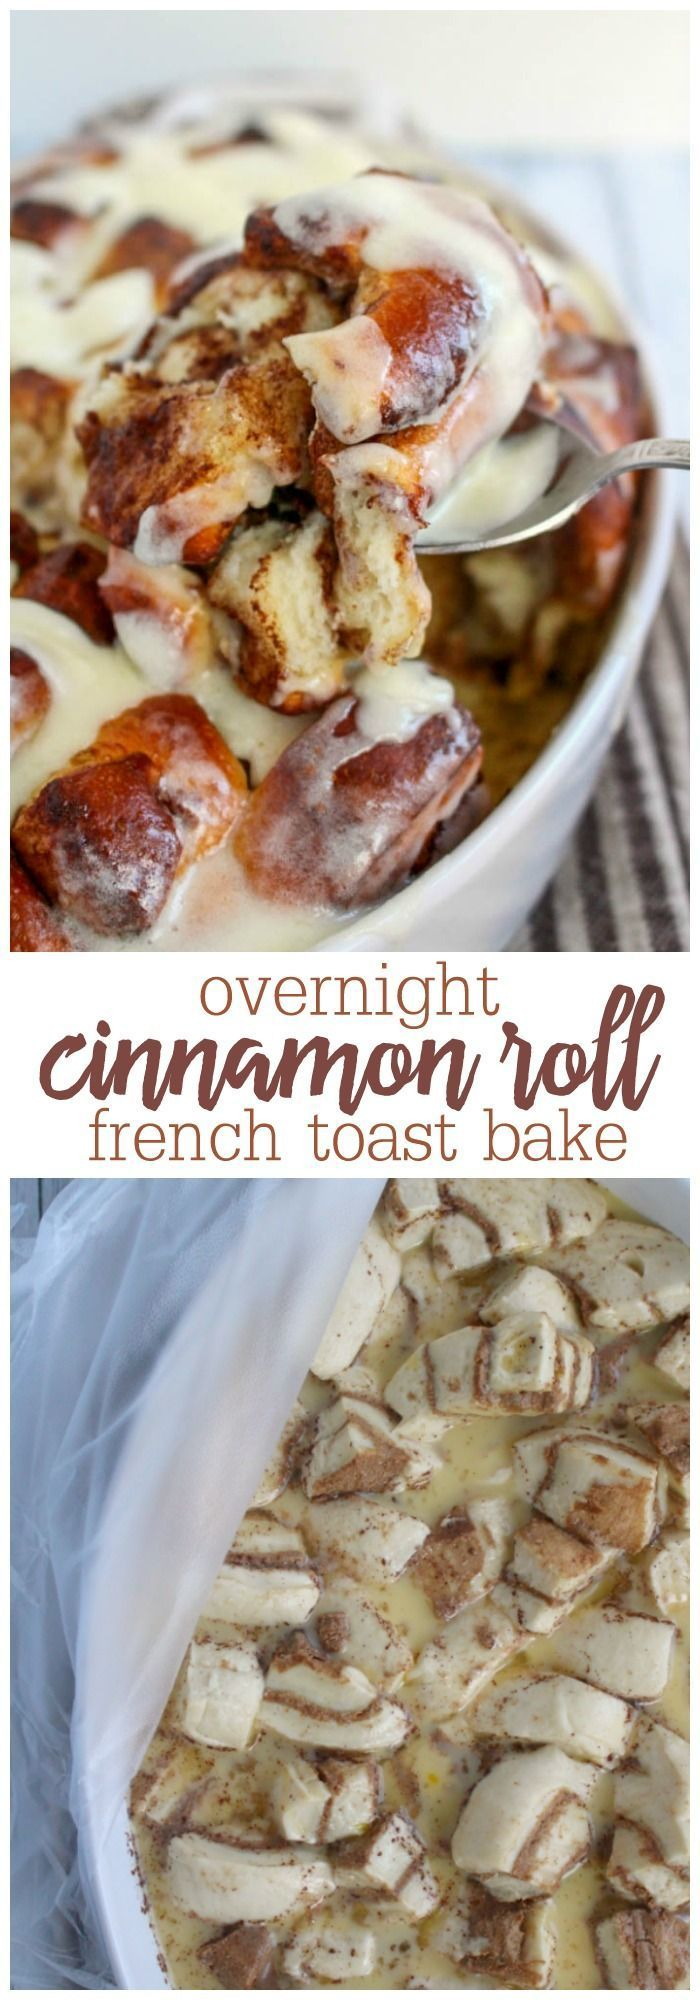 Roll French Toast Bake Can't decide between cinnamon rolls and french toast for breakfast? Now you don't have to with my Overnight Cinnamon Roll French Toast Bake! Super-easy to make, using frozen cinnamon rolls, this overnight dish is perfect for company or anytime you want to treat your family to a delicious breakfast or brunch!Can't decide bet...